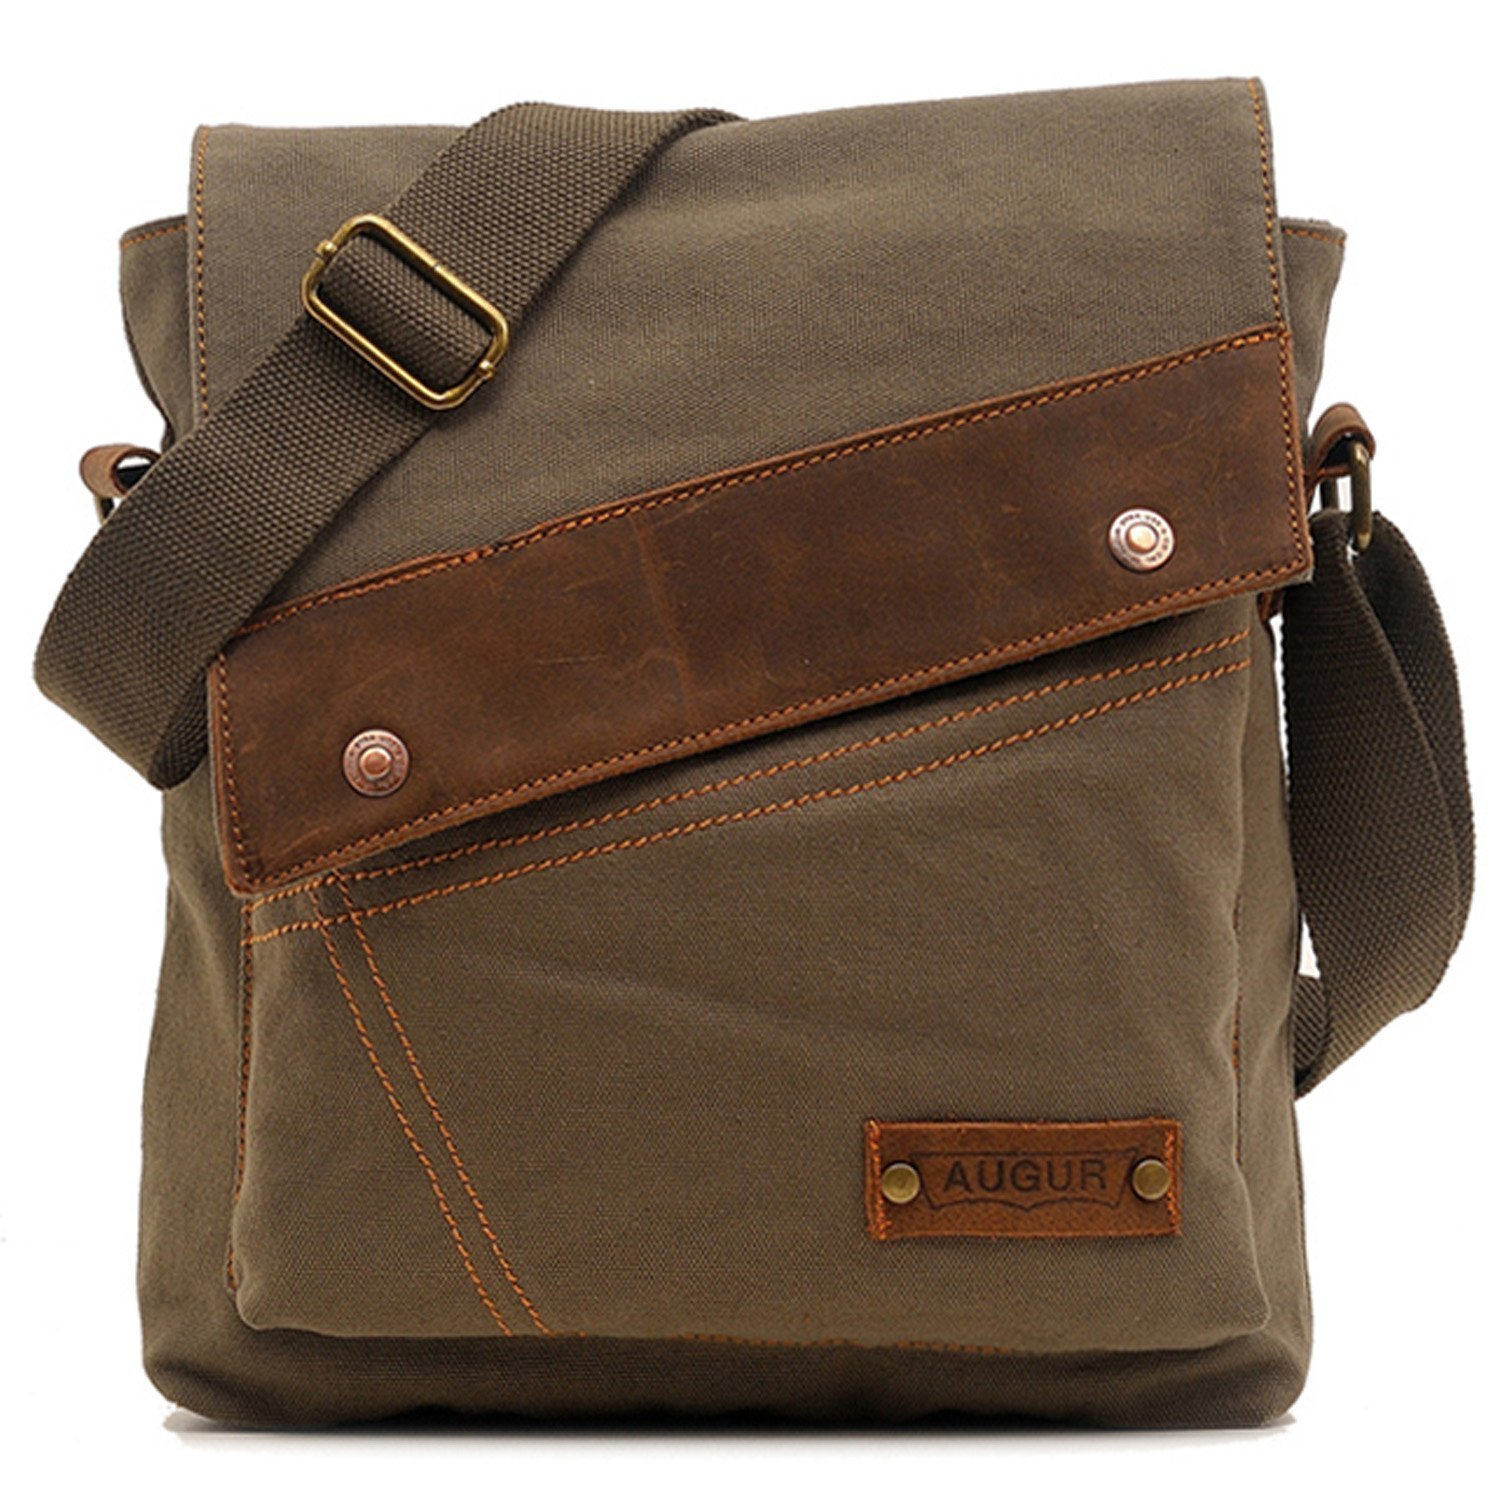 76203a632b2 Amazon.com   Aibag Messenger Bag, Vintage Small Canvas Shoulder Crossbody  Purse (Army Green)   Messenger Bags